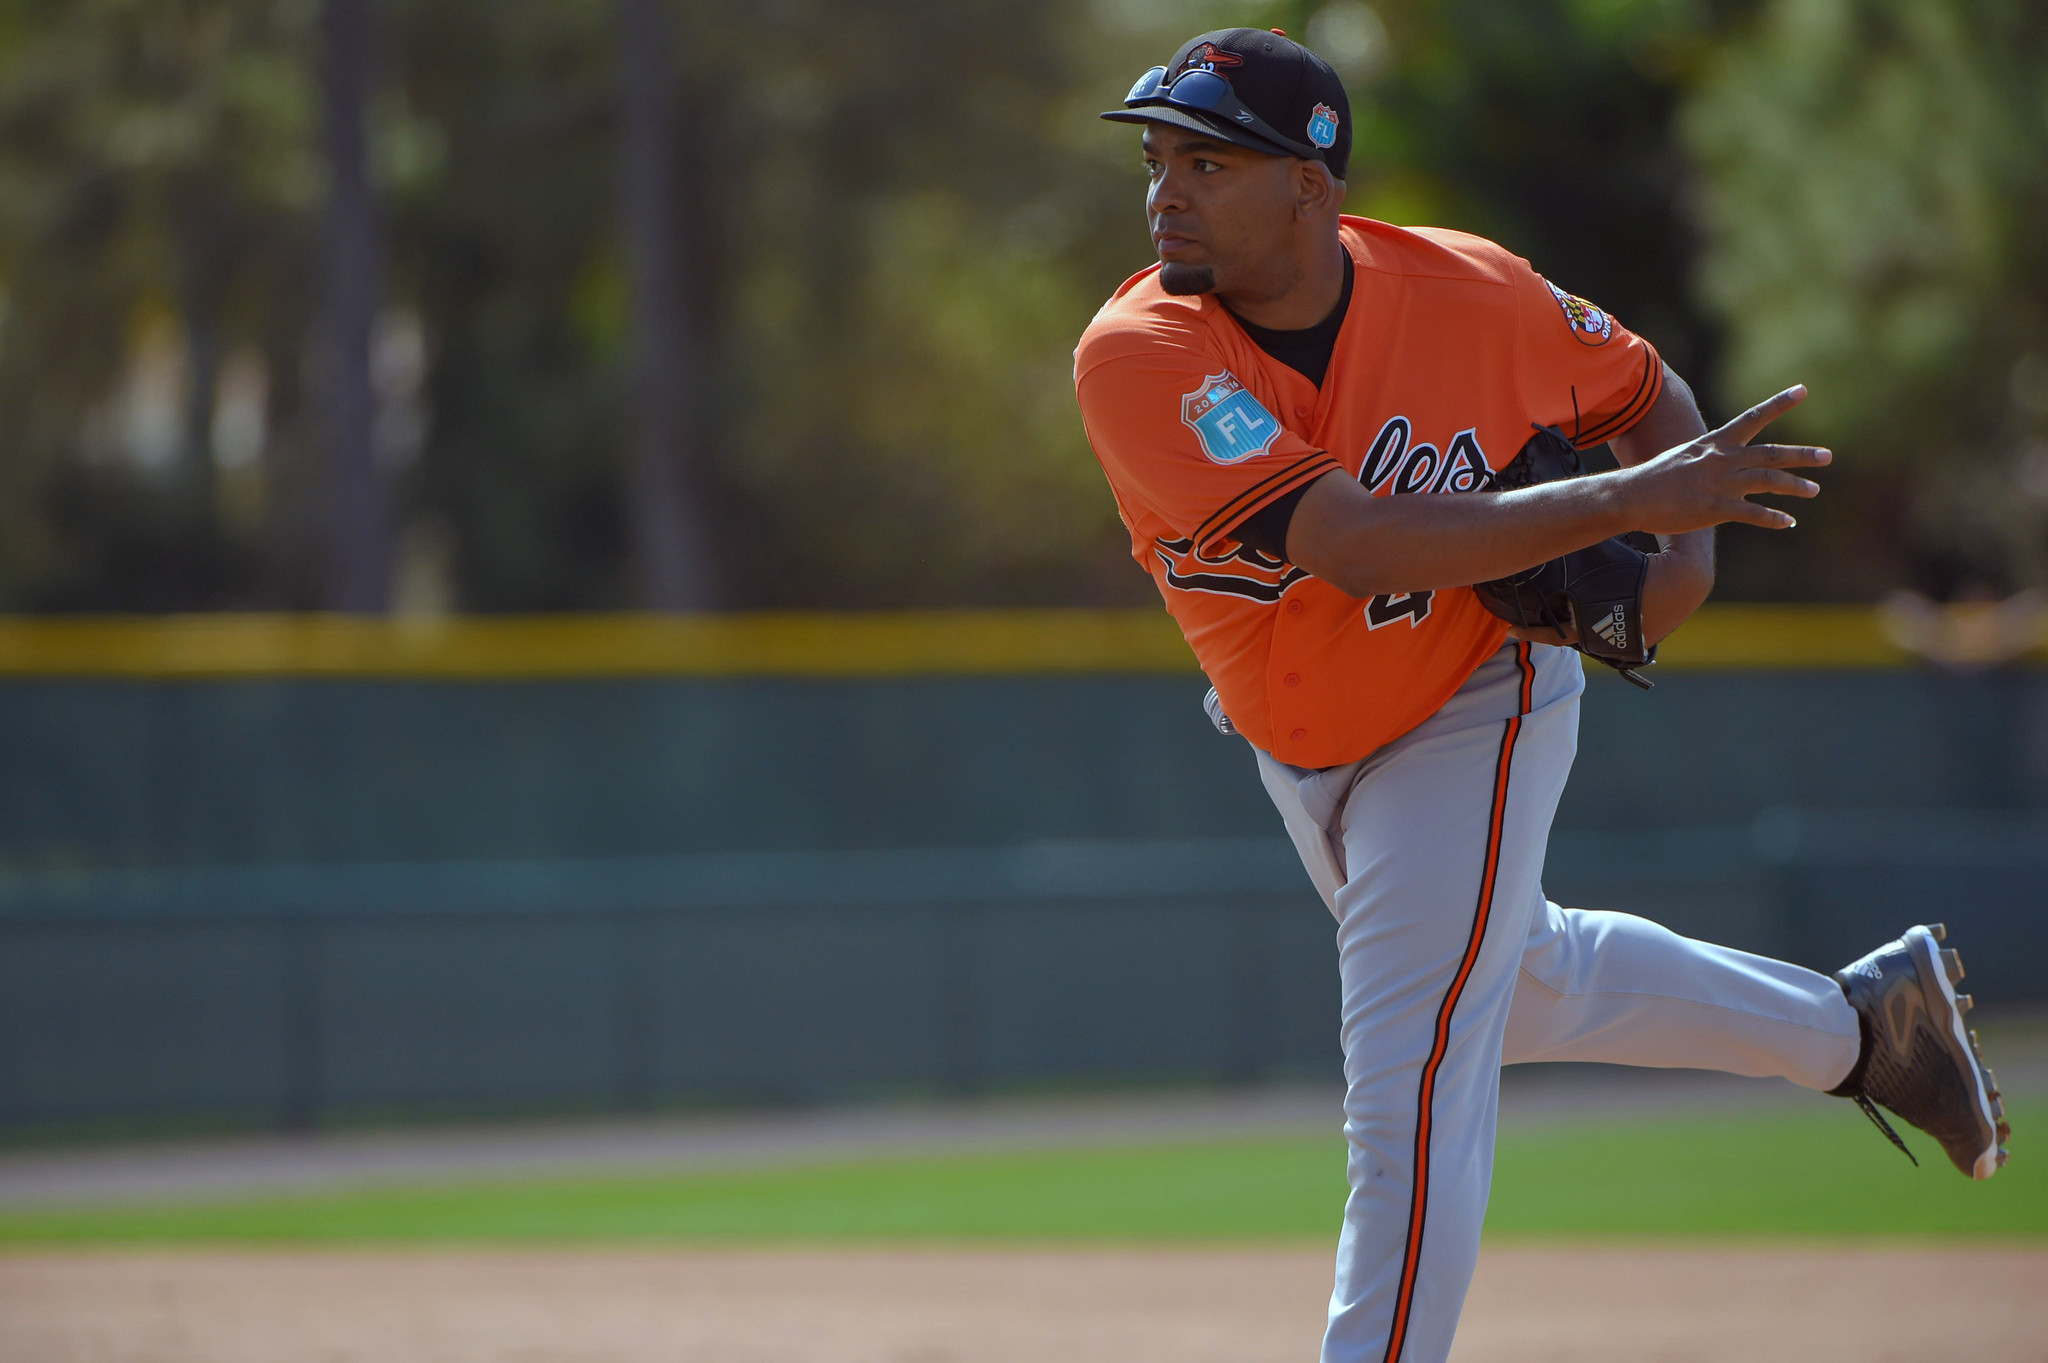 Bal-orioles-thoughts-and-observations-on-wednesday-s-starter-dylan-bundy-kevin-gausman-and-potential-ros-20160621